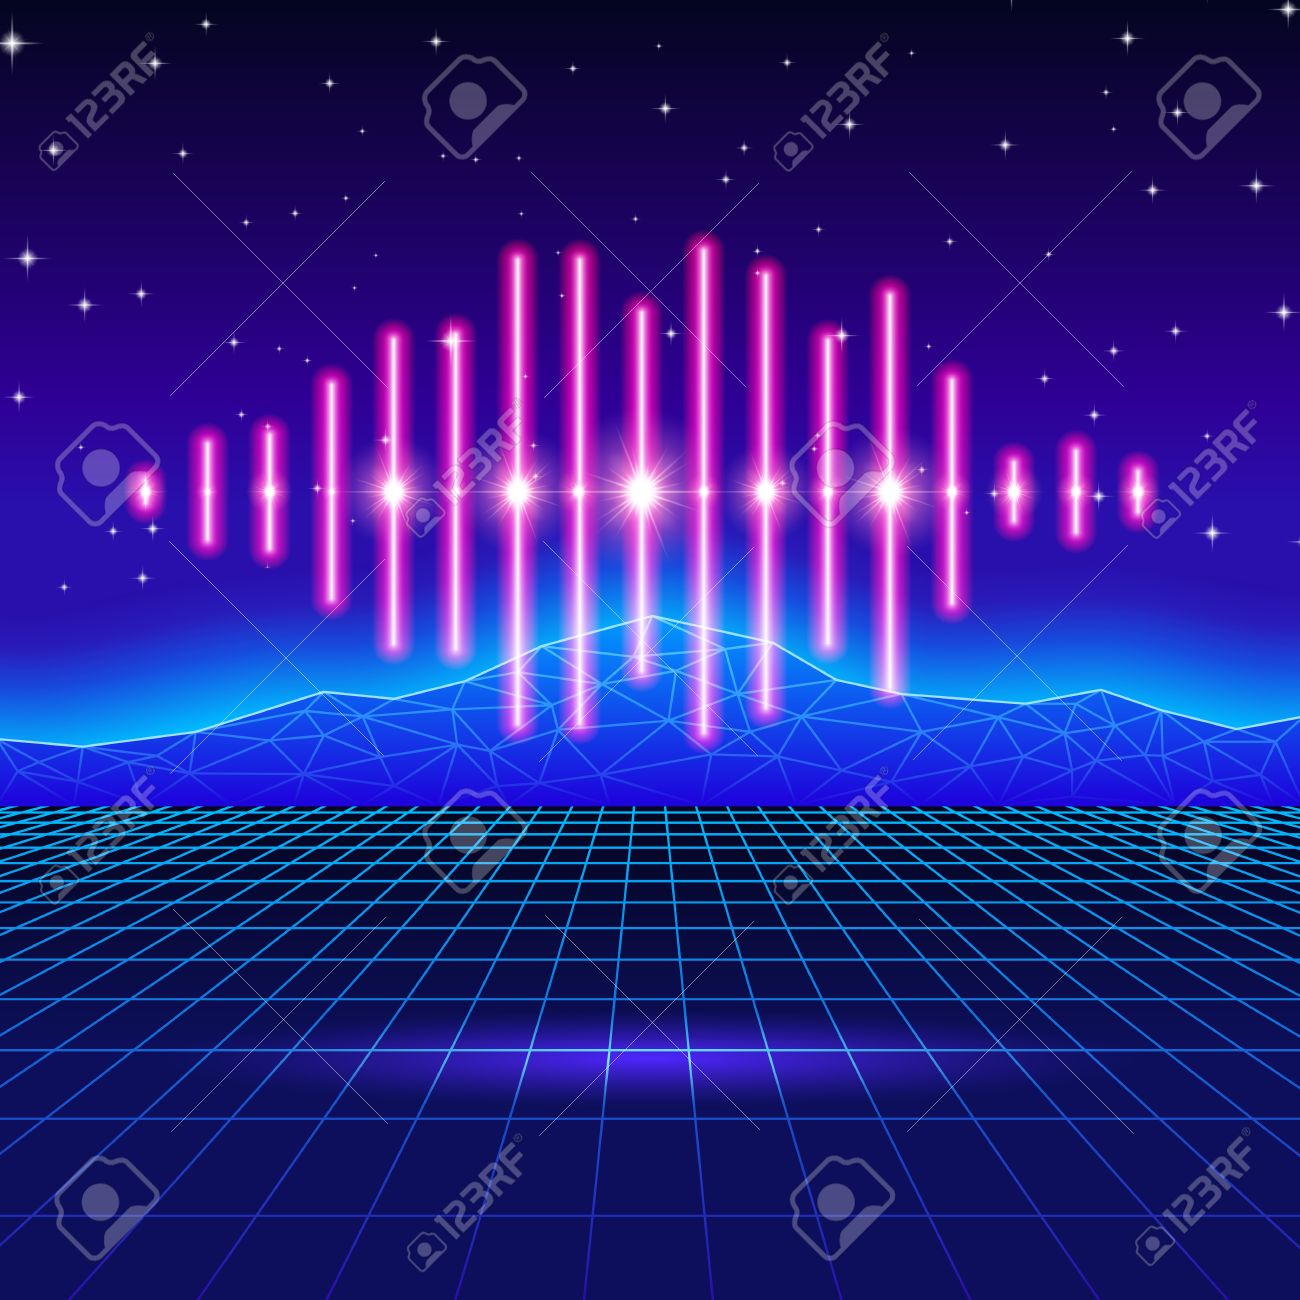 Retro gaming neon background with music wave - 55143368